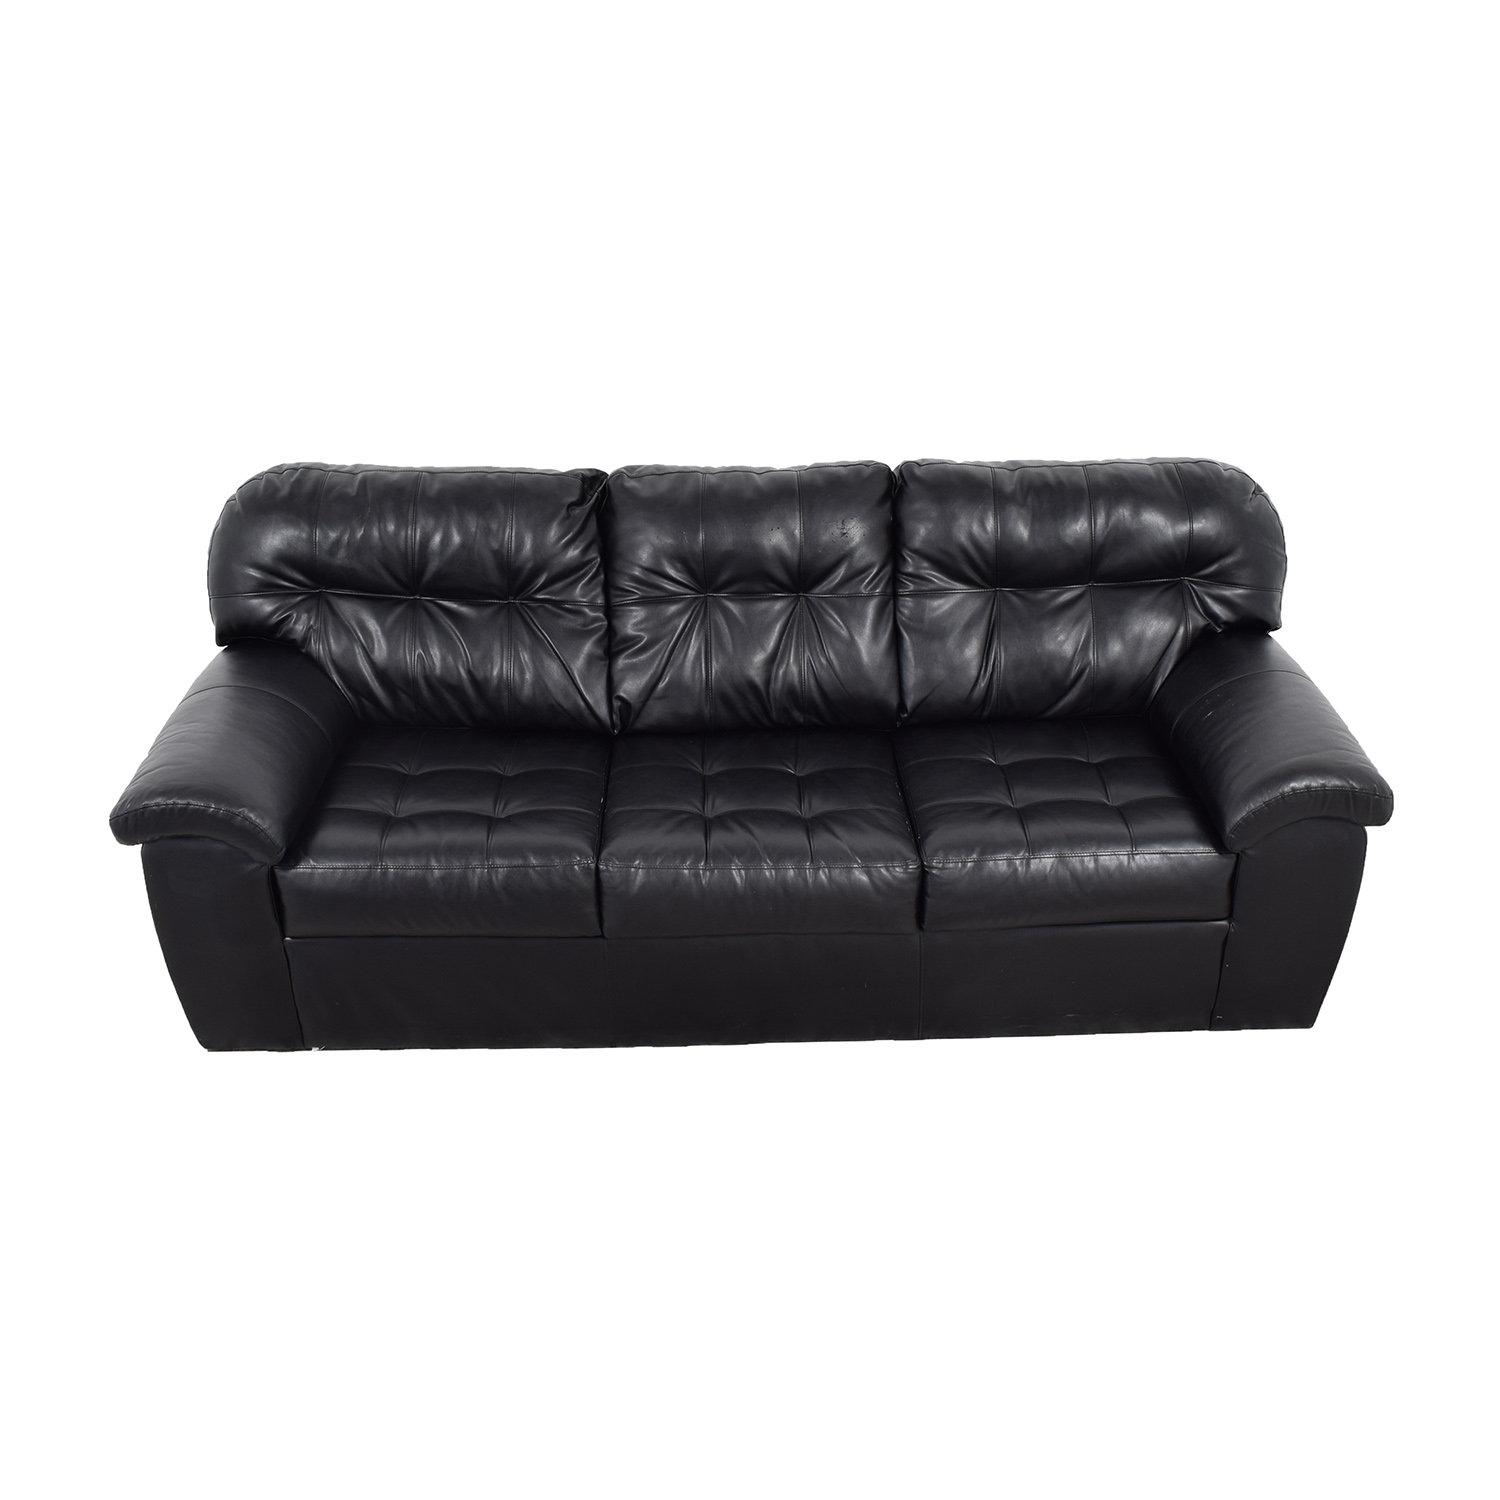 59% OFF Black Leather Tufted Three Cushion Sofa Sofas